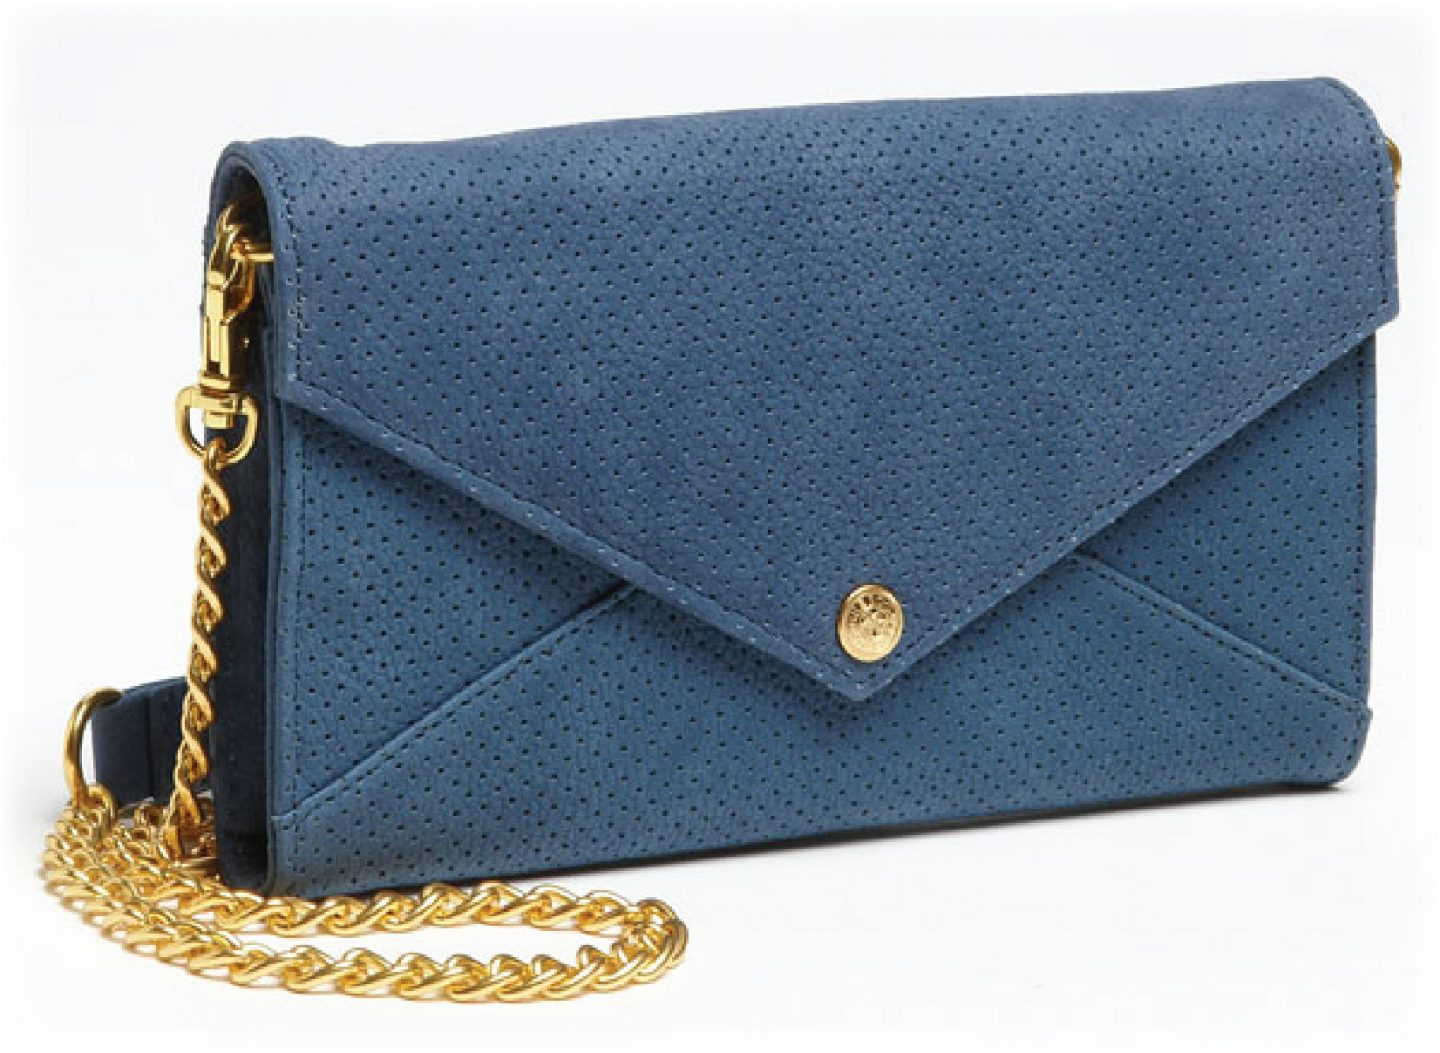 Rebecca Minkoff – Perforated Wallet on a Chain